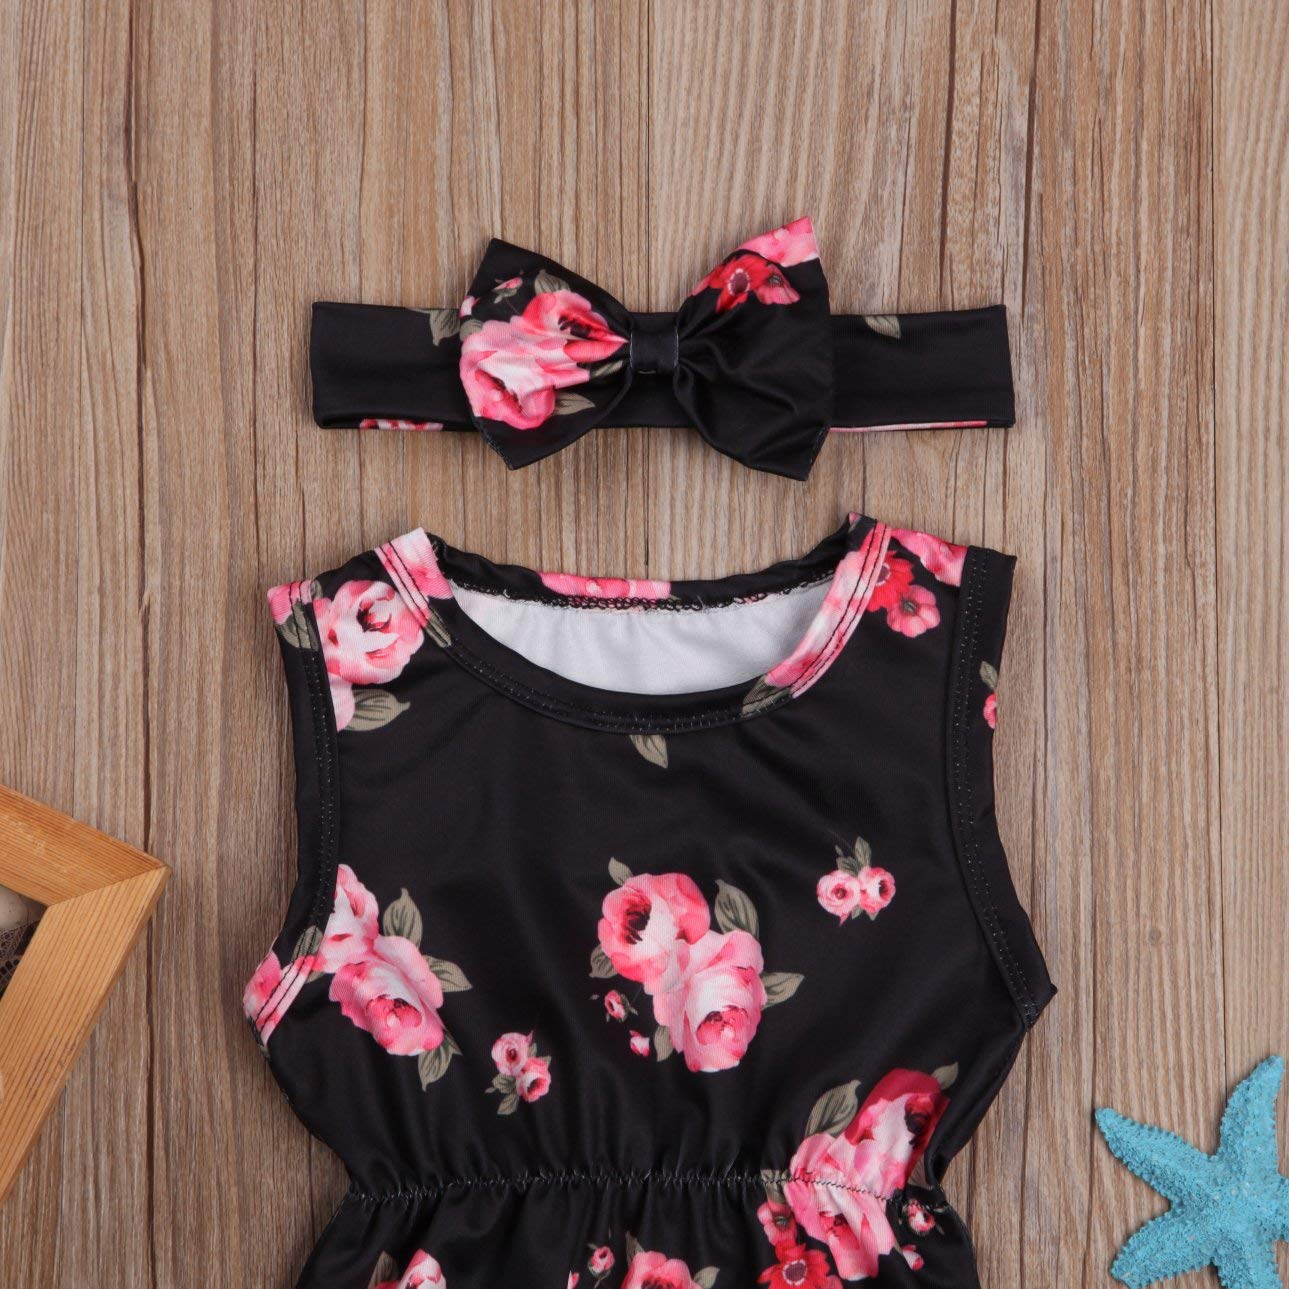 Headband Outfits Clothes Set douleway Baby Girl Floral Rose Sleeveless Tassel Button Romper